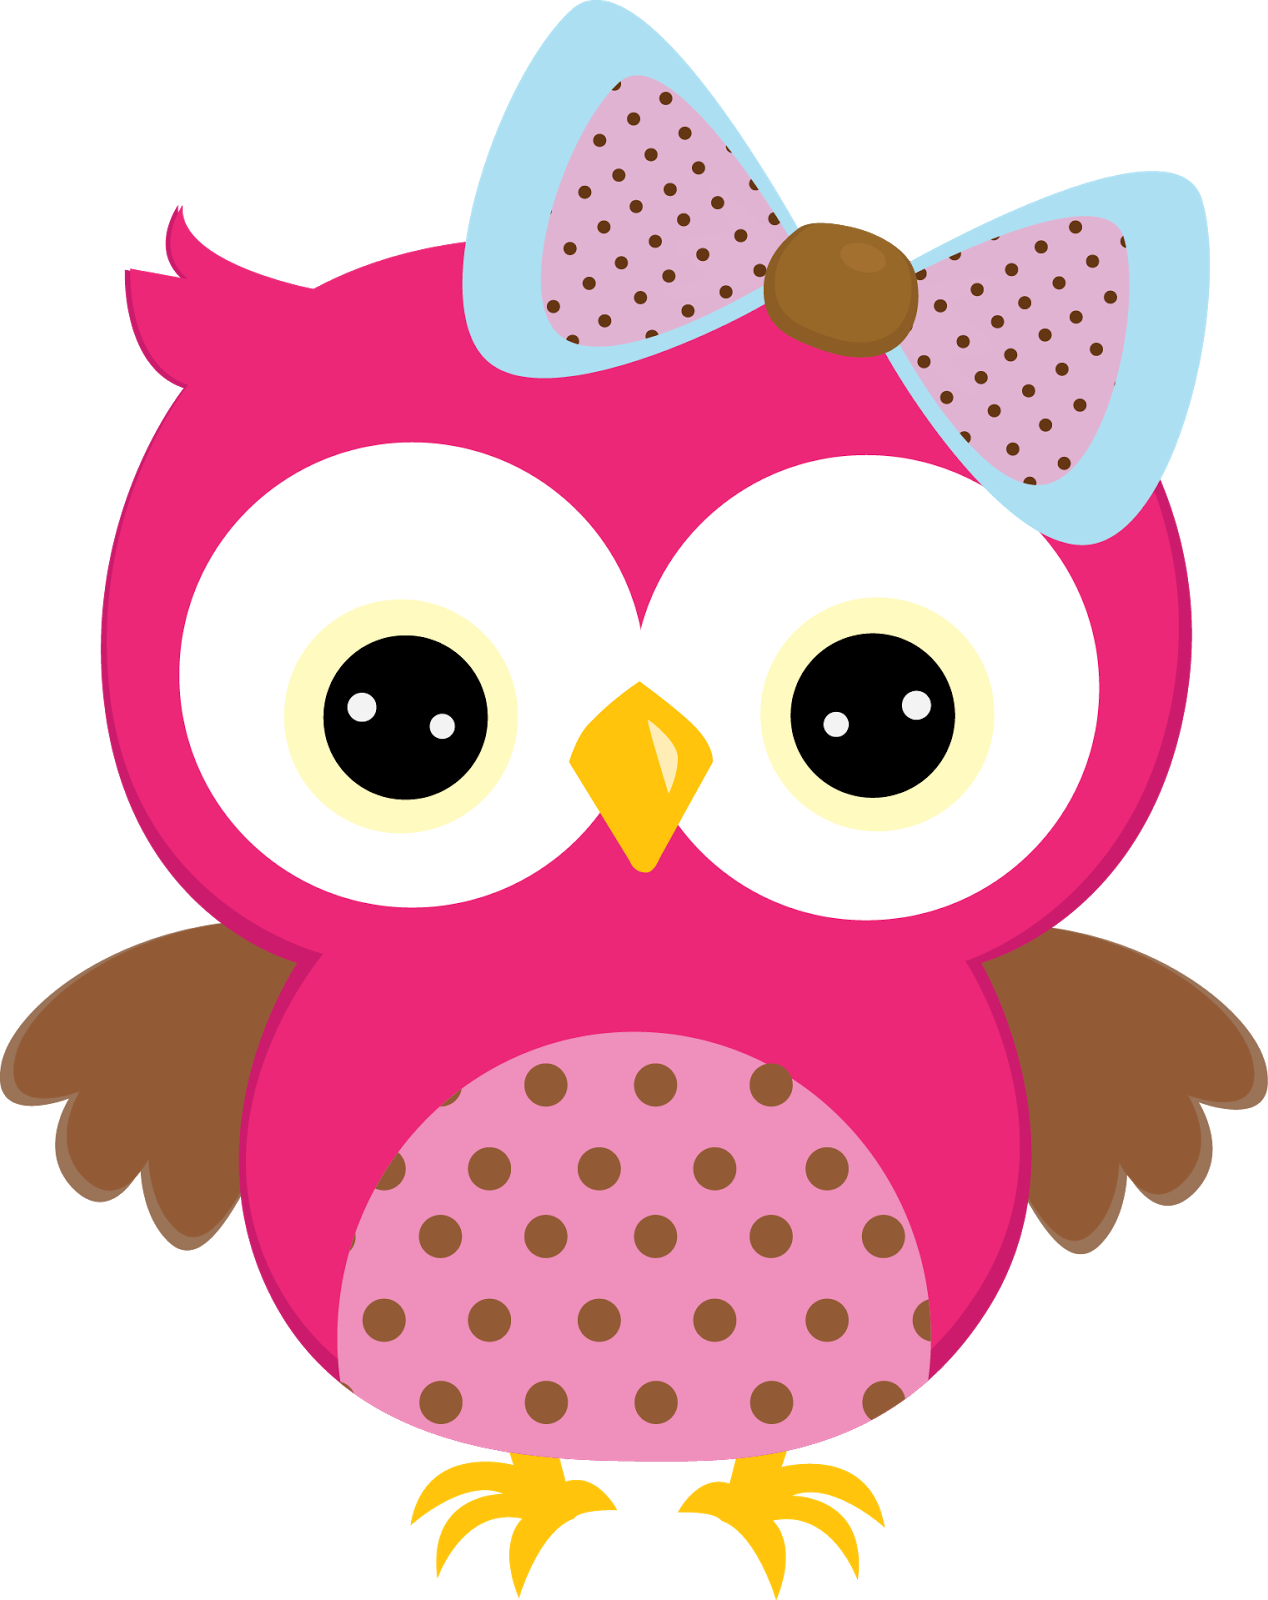 Winter clipart owl. De b hos colores